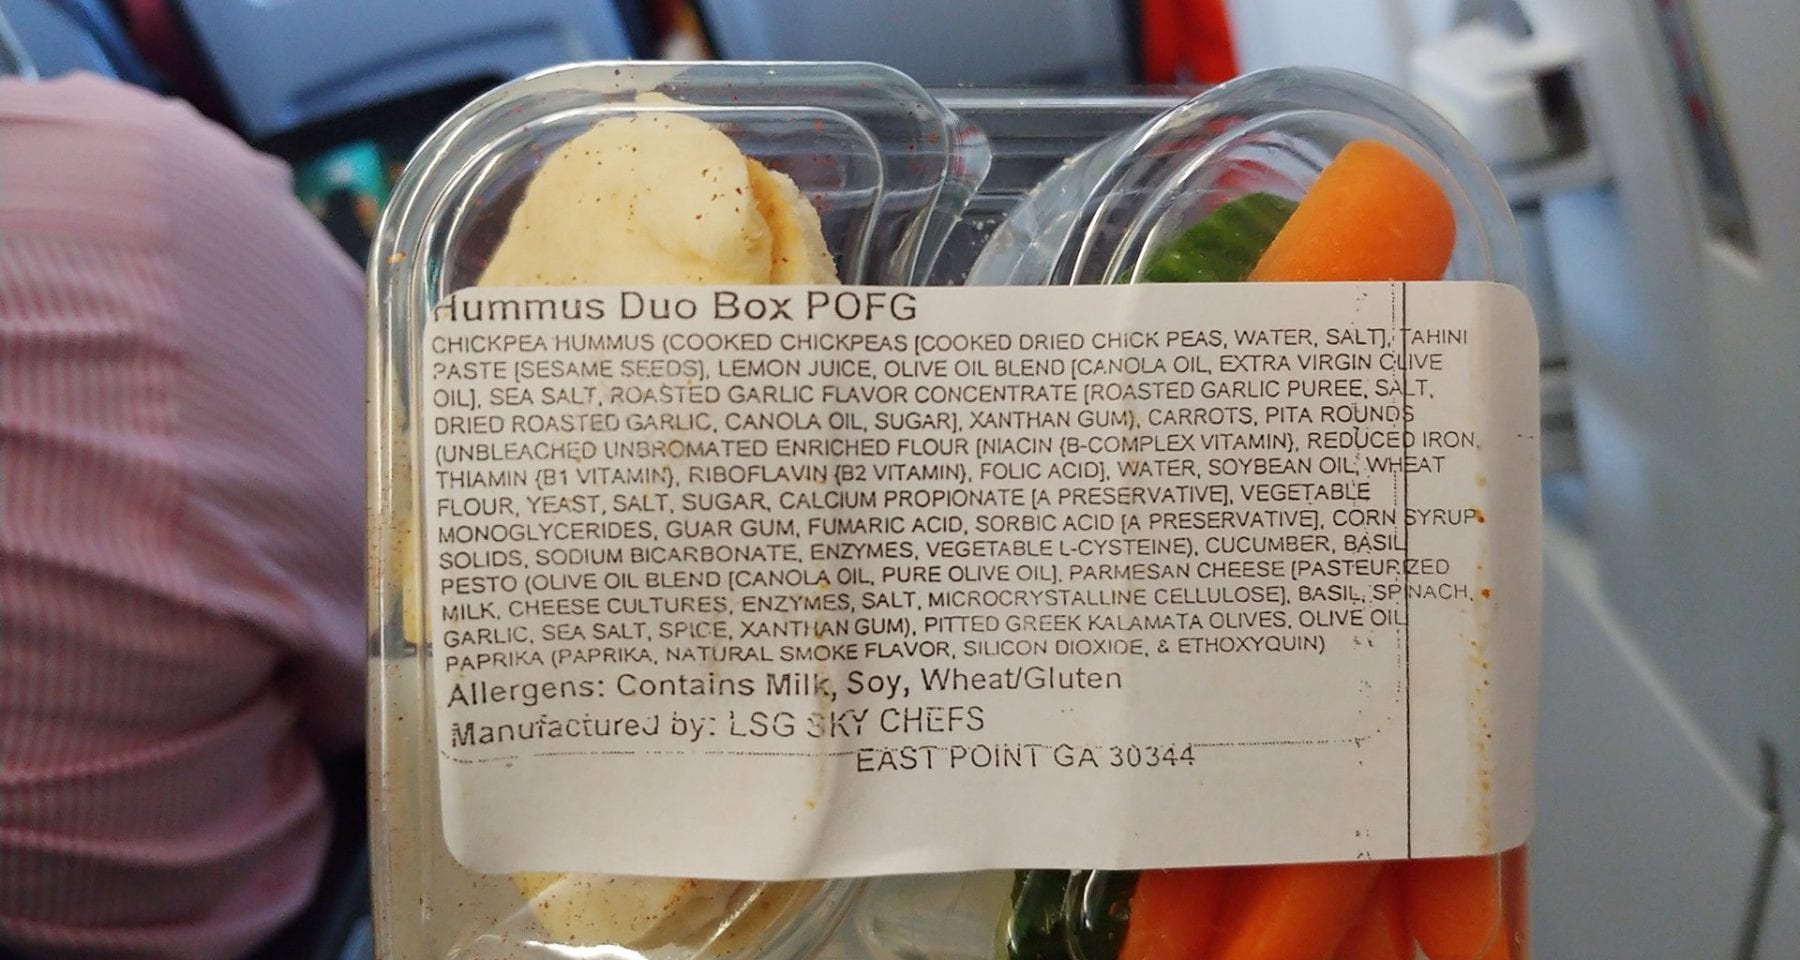 American airlines meal ingredients